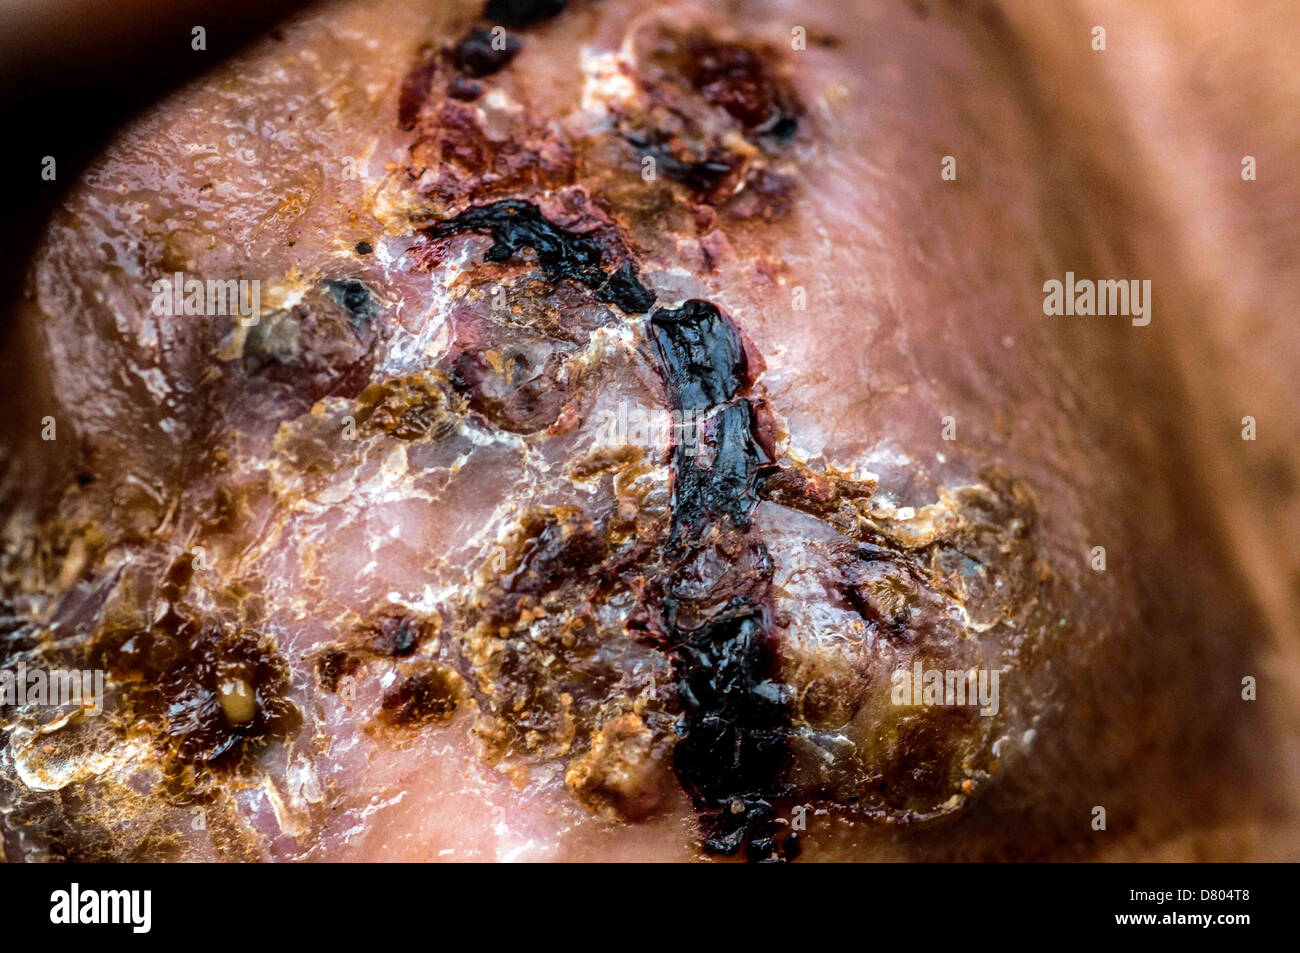 Eumycetoma on the right foot of a 35 year old male. - Stock Image